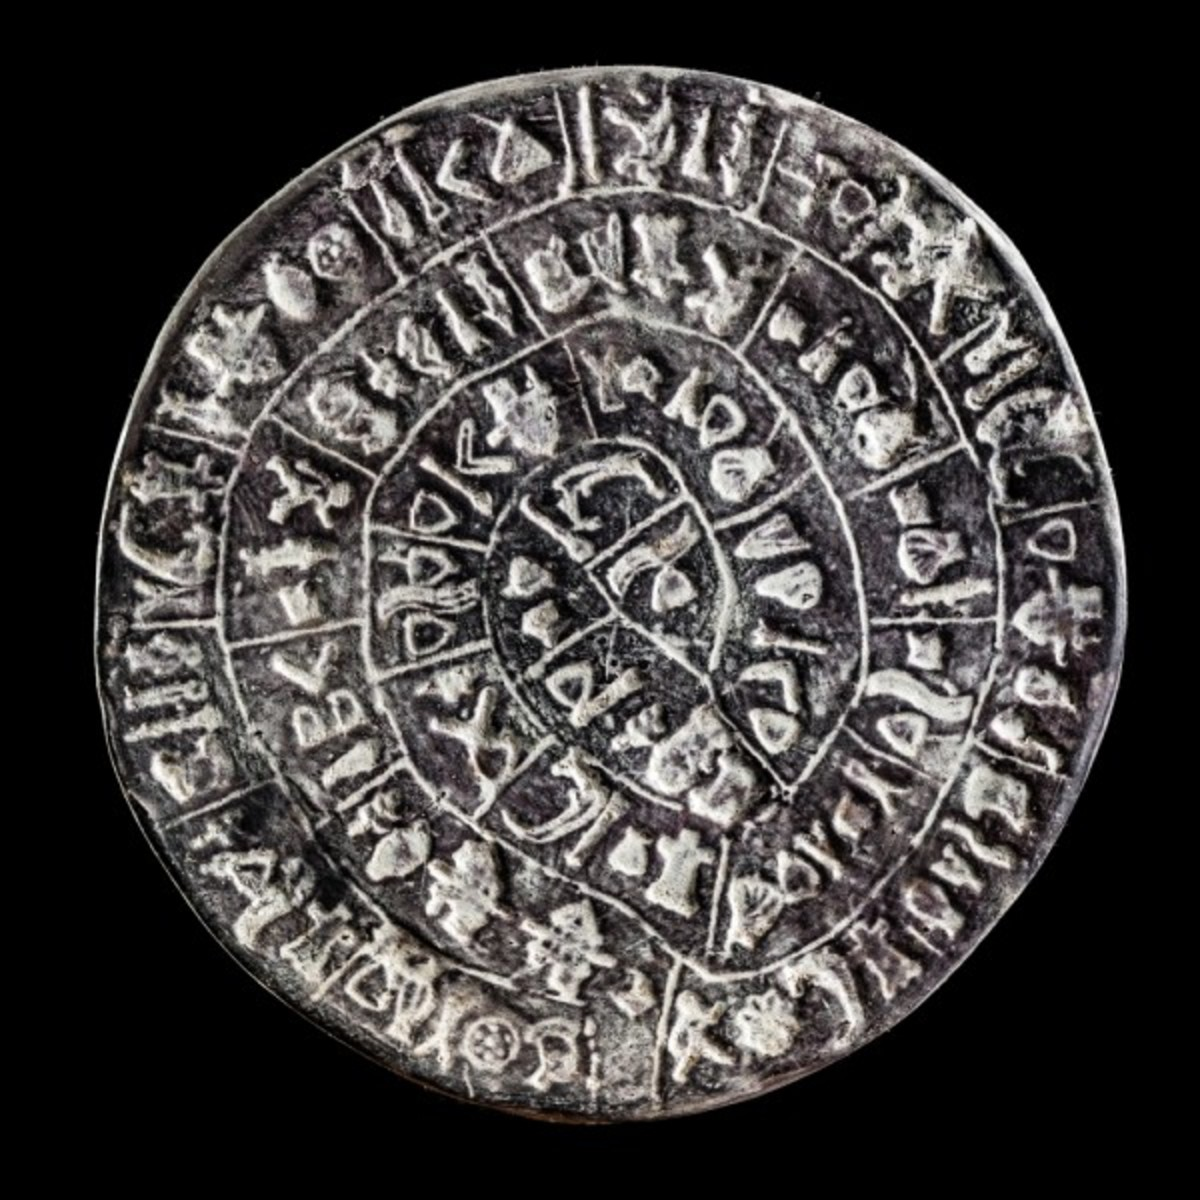 The Phaistos Disc was discovered by the Italian archeologist Luigi Pernier in 1908, near the Minoan palace of Phaistos. The disc is believed to have its origins from the late Minoan Bronze Age. It is 15 cm wide.